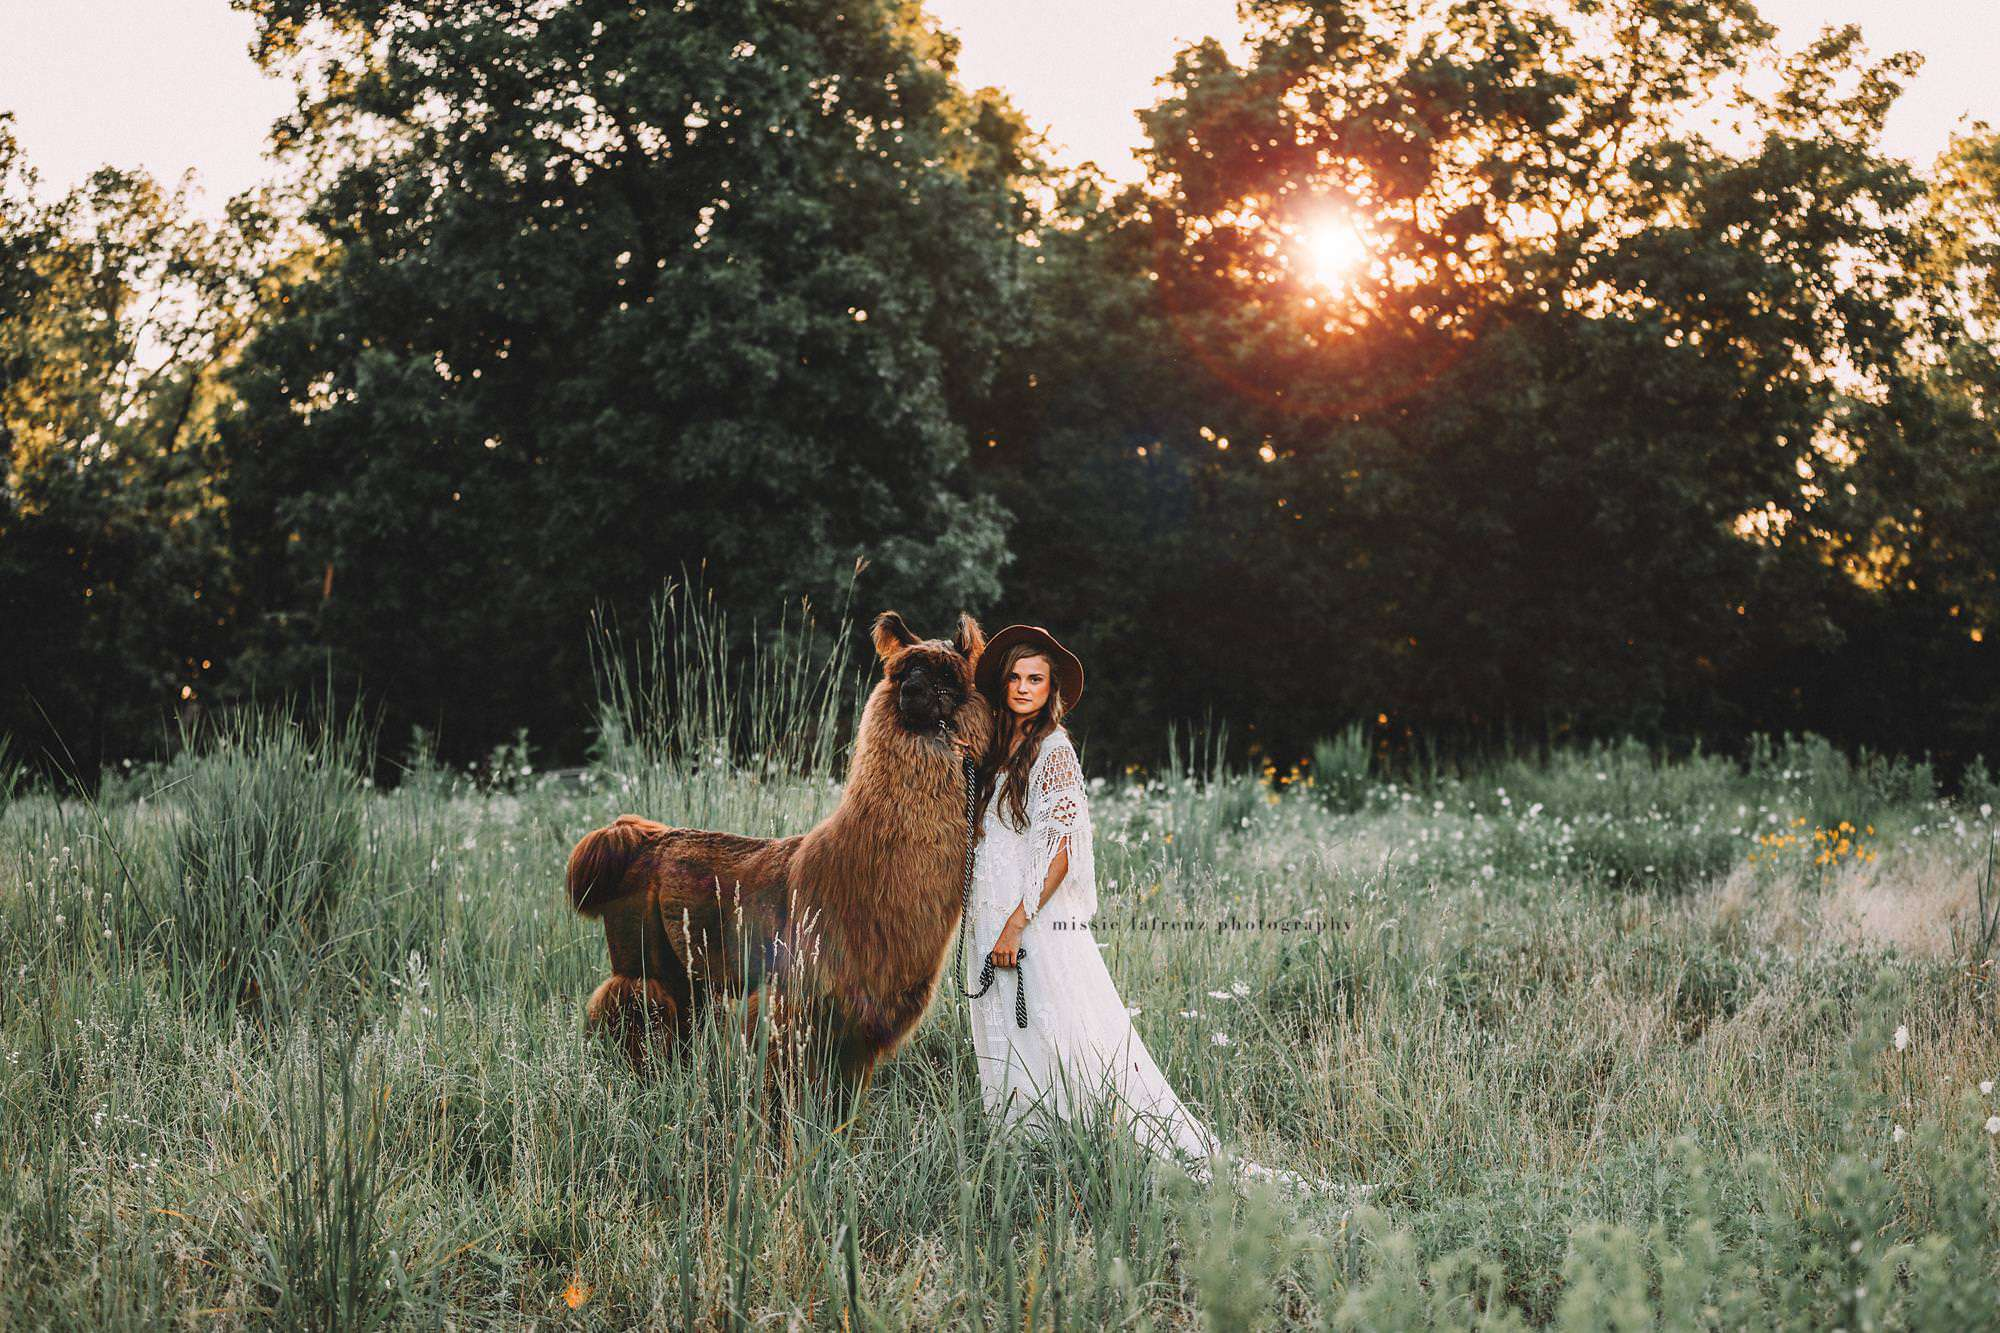 An alpaca is holding by a woman on a field